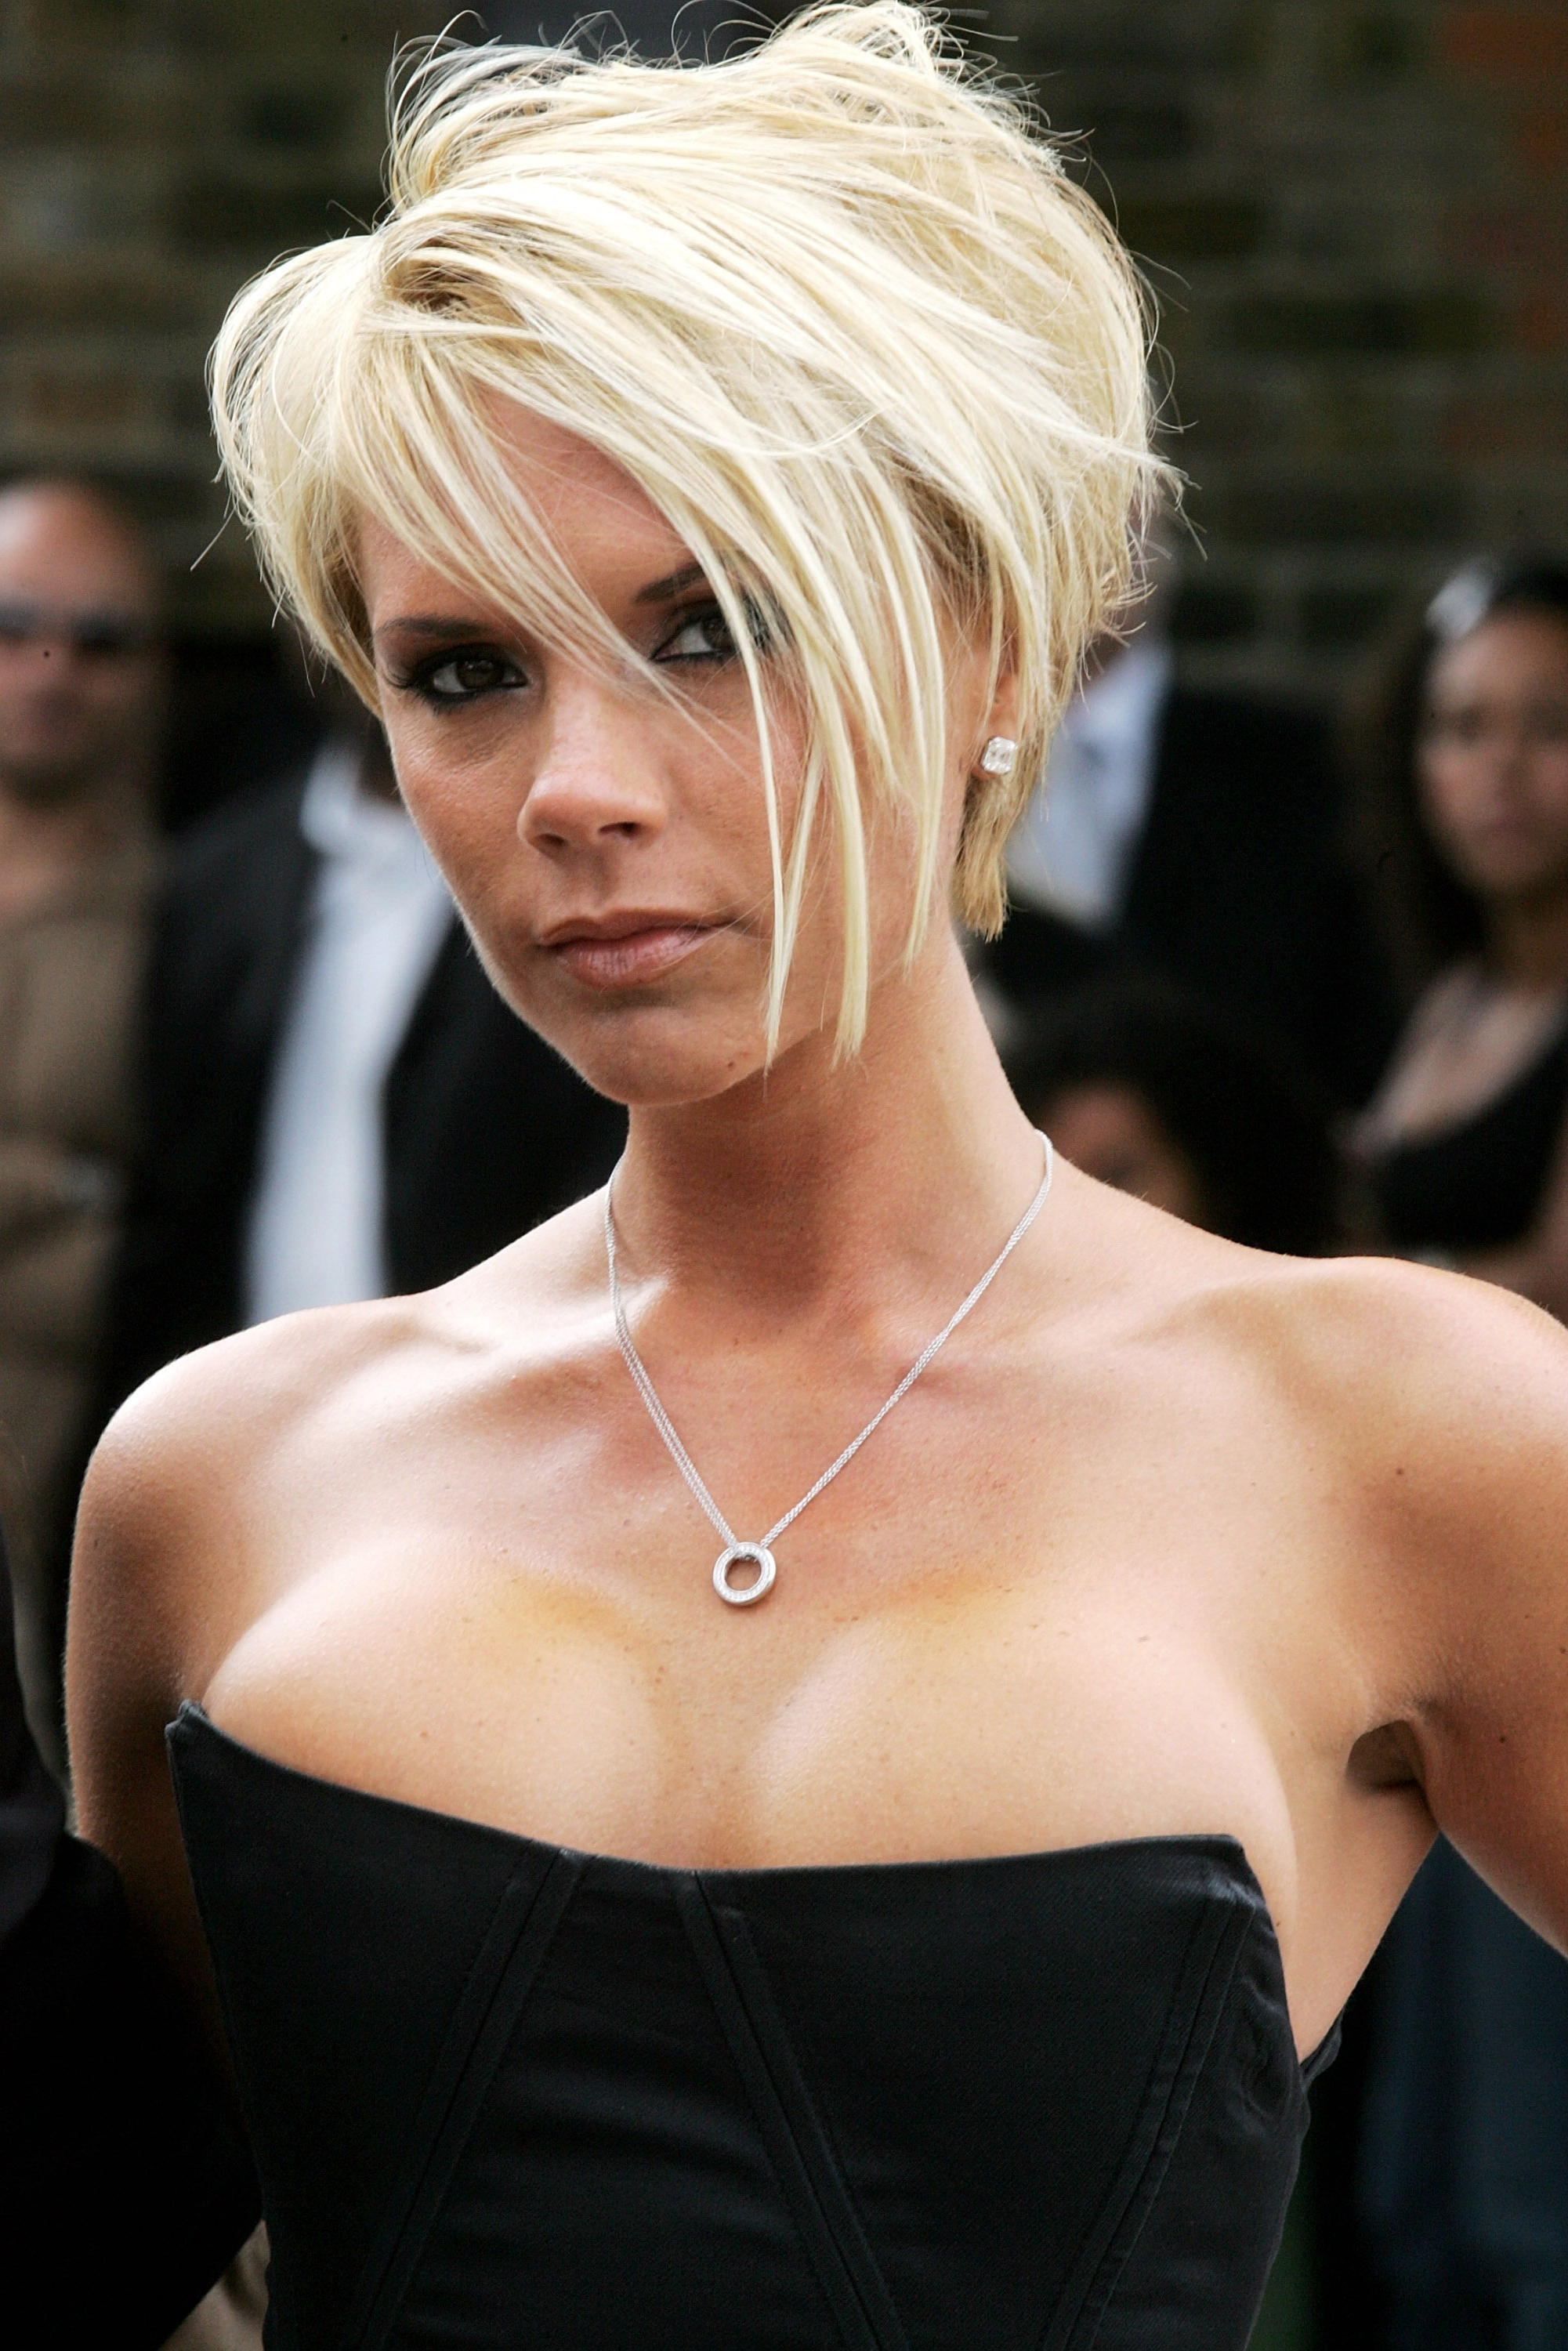 Never Forget That It Was 10 Years Ago When Victoria Beckham Slayed Inside Posh Spice Short Hairstyles (View 6 of 25)